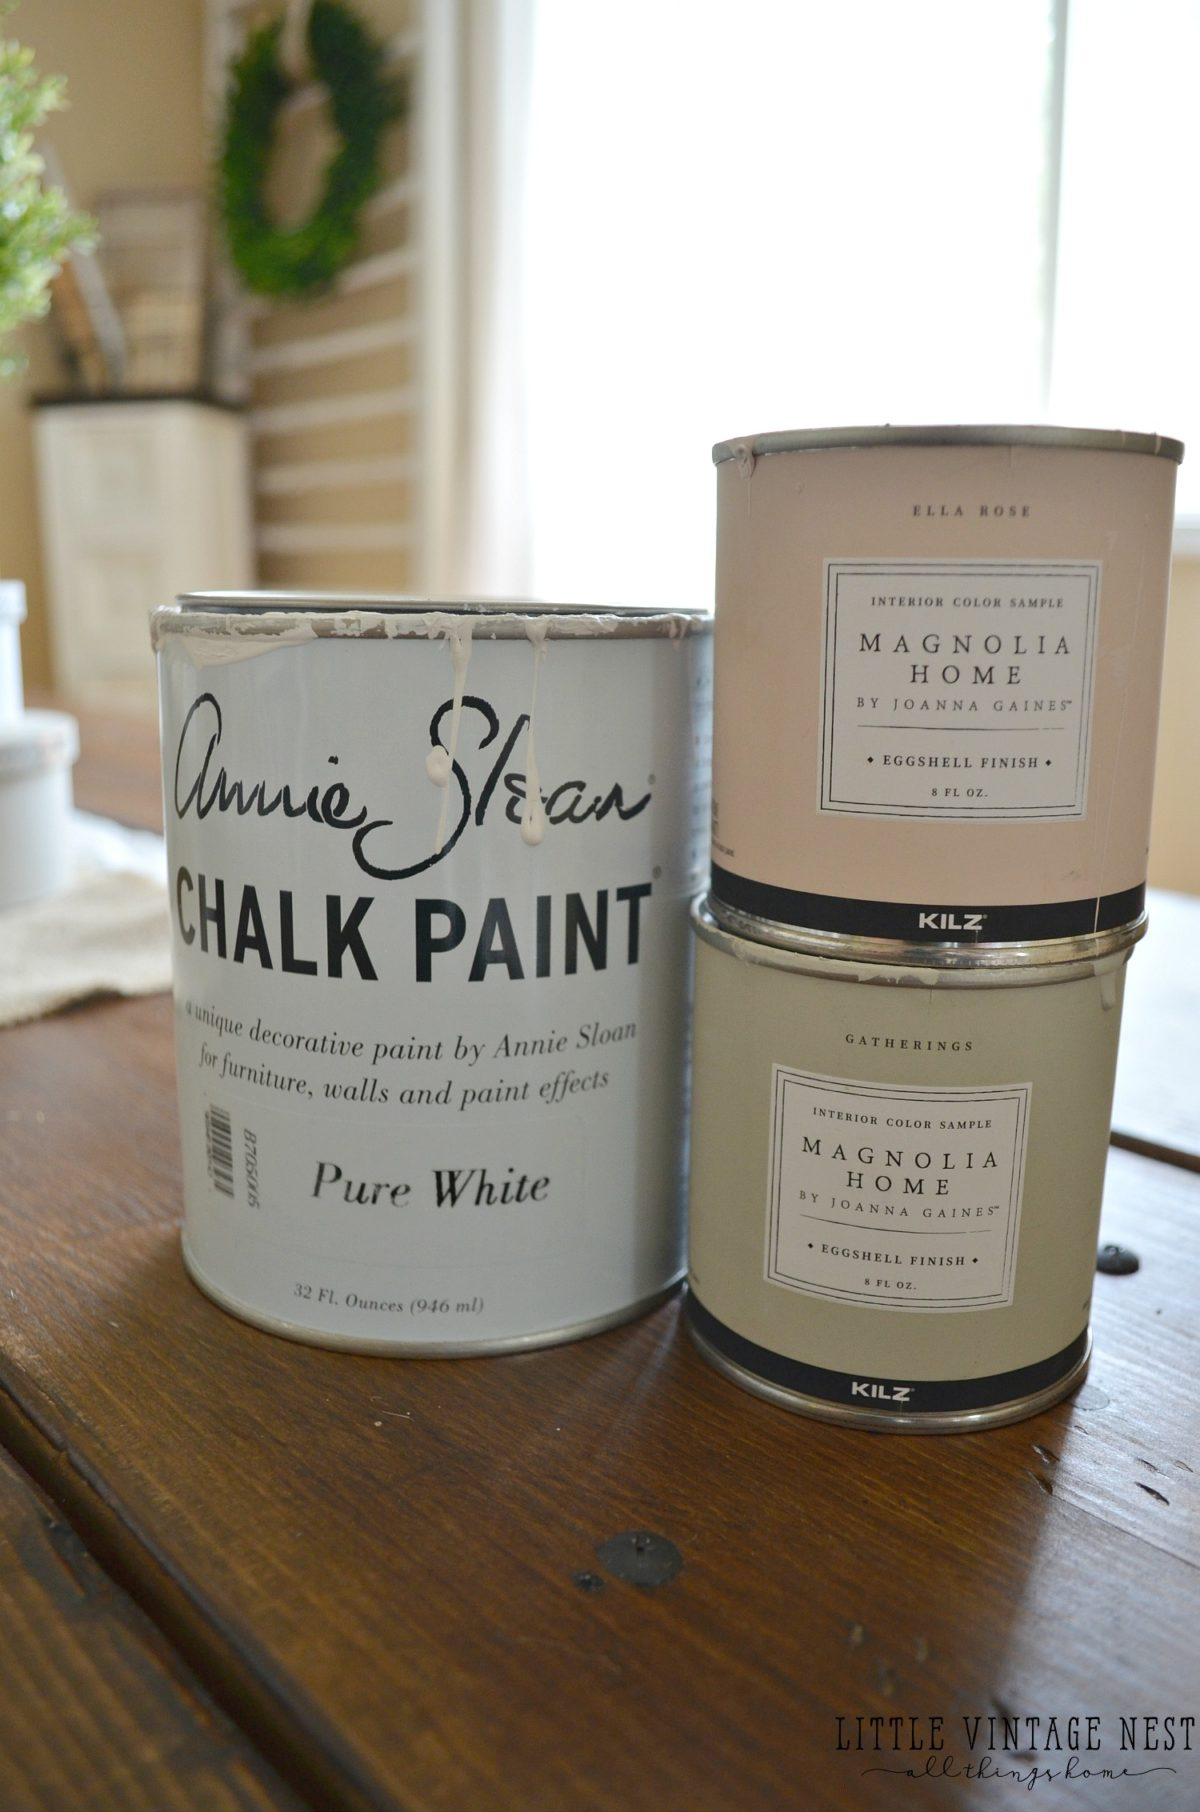 Magnolia Home Paint and Annie Sloan Chalk Paint